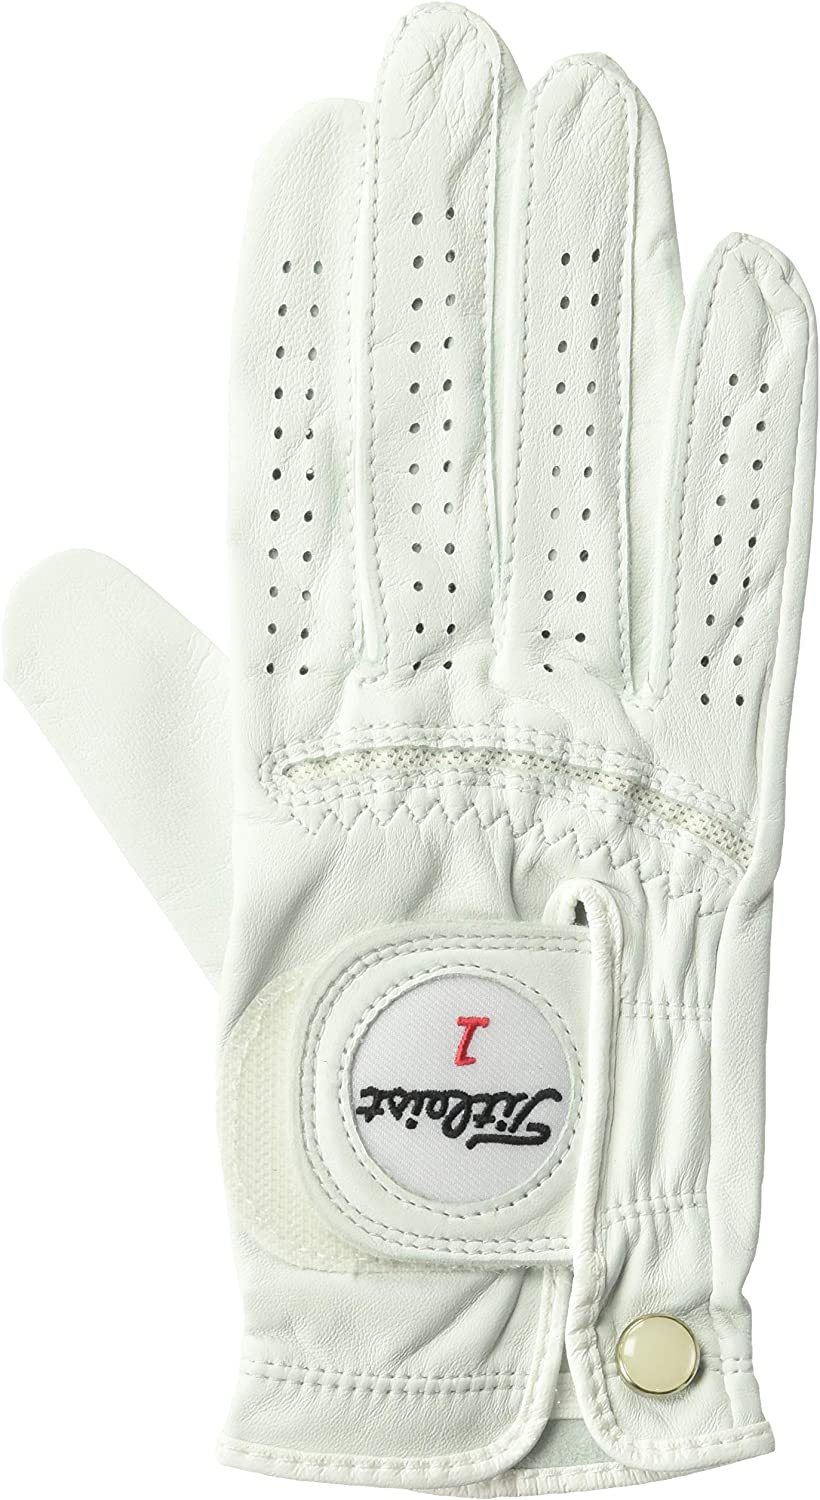 Great interest New products, world's highest quality popular! Titleist Women's Perma Golf Glove Soft